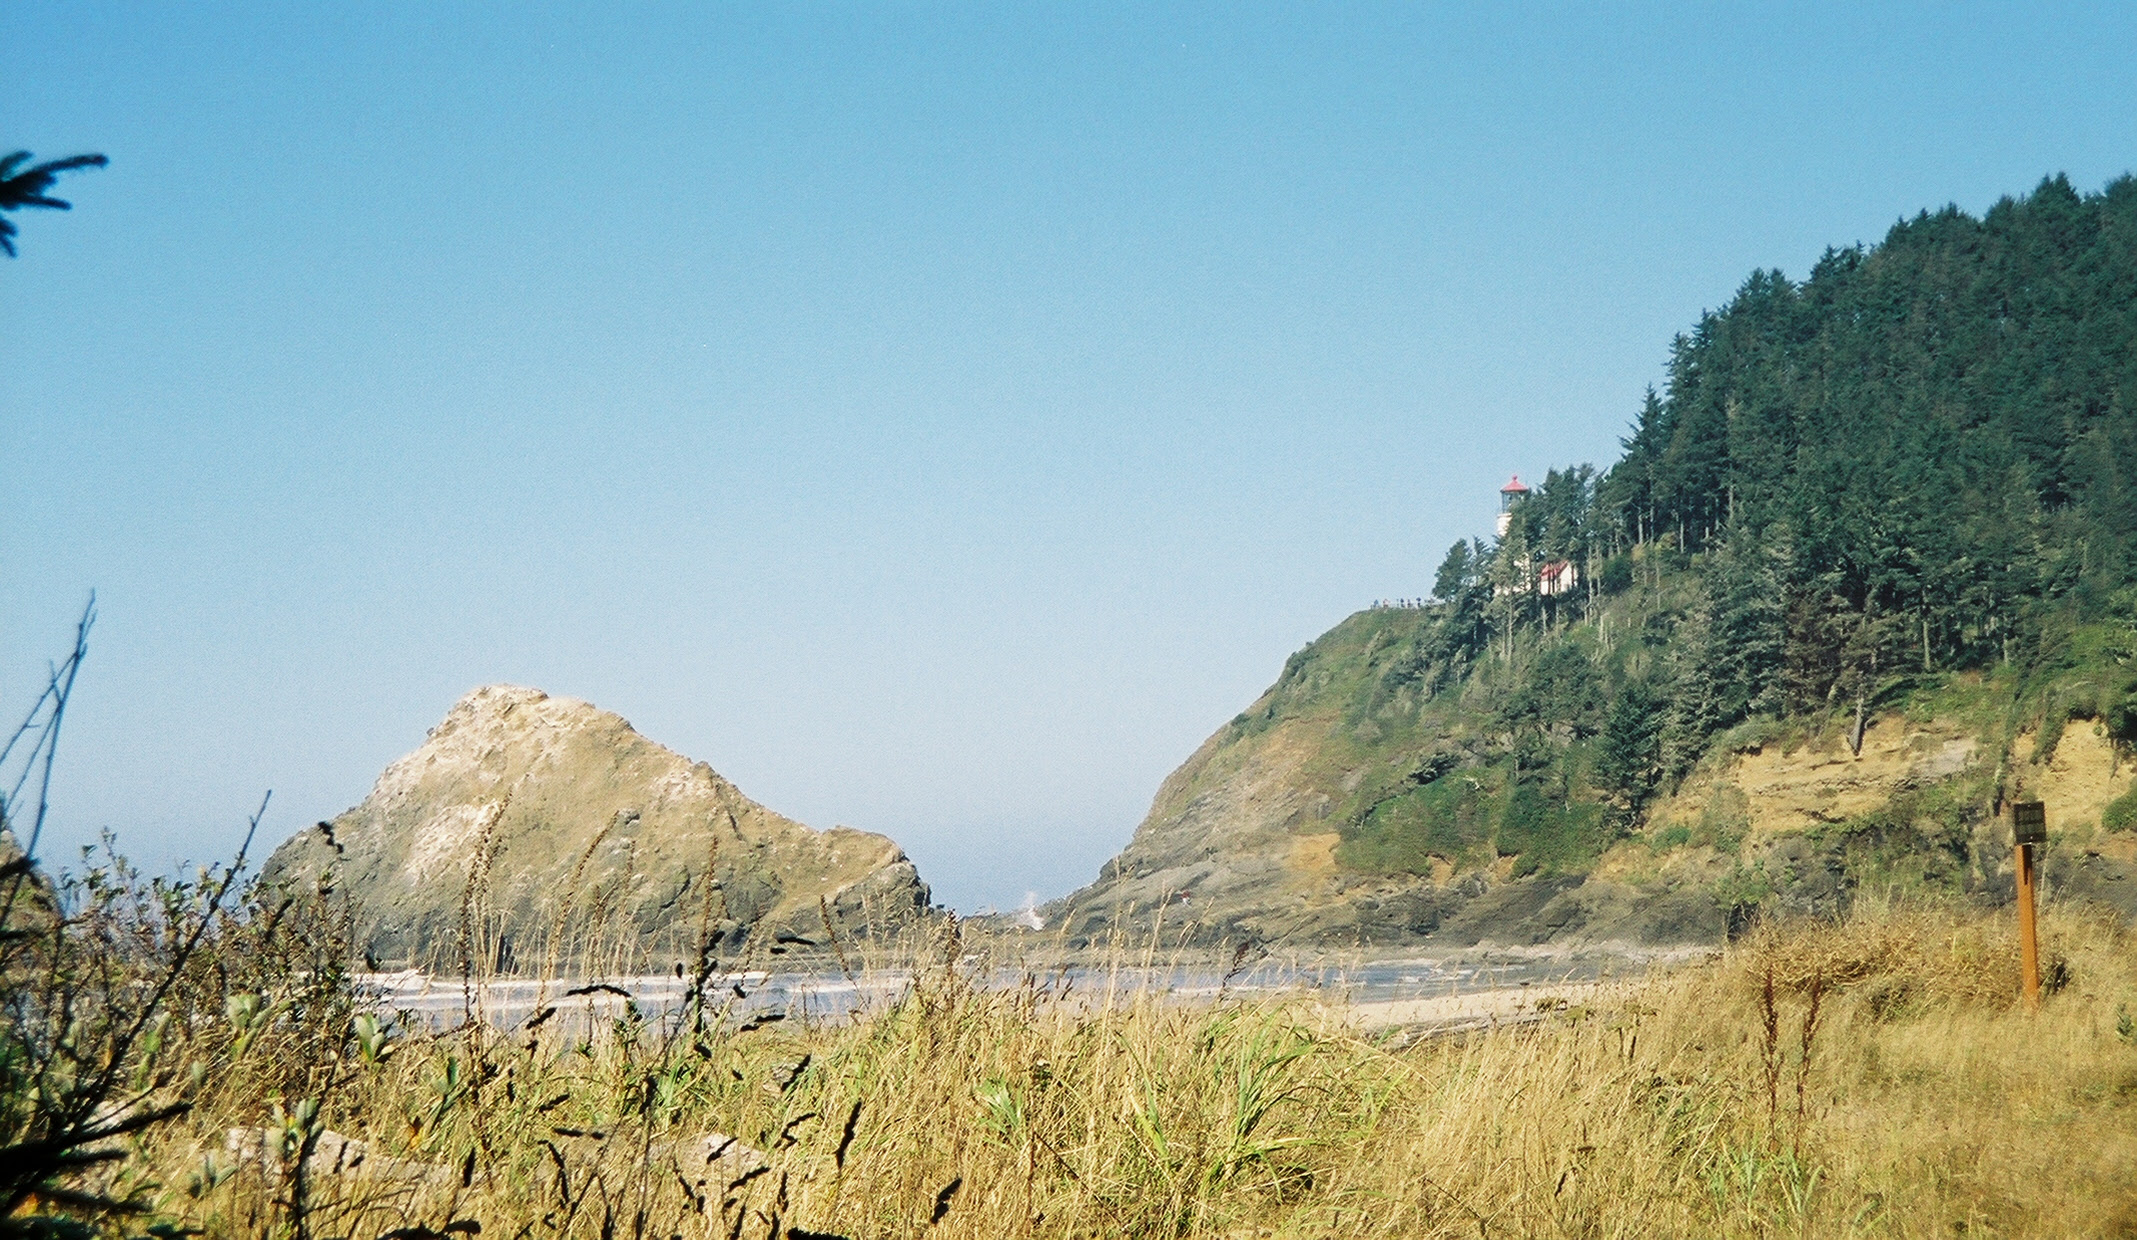 Heceta Head and lighthouse surrounded by salal meadows, rhododendrons and Sitka spruce groves with Parrot Rock to the left